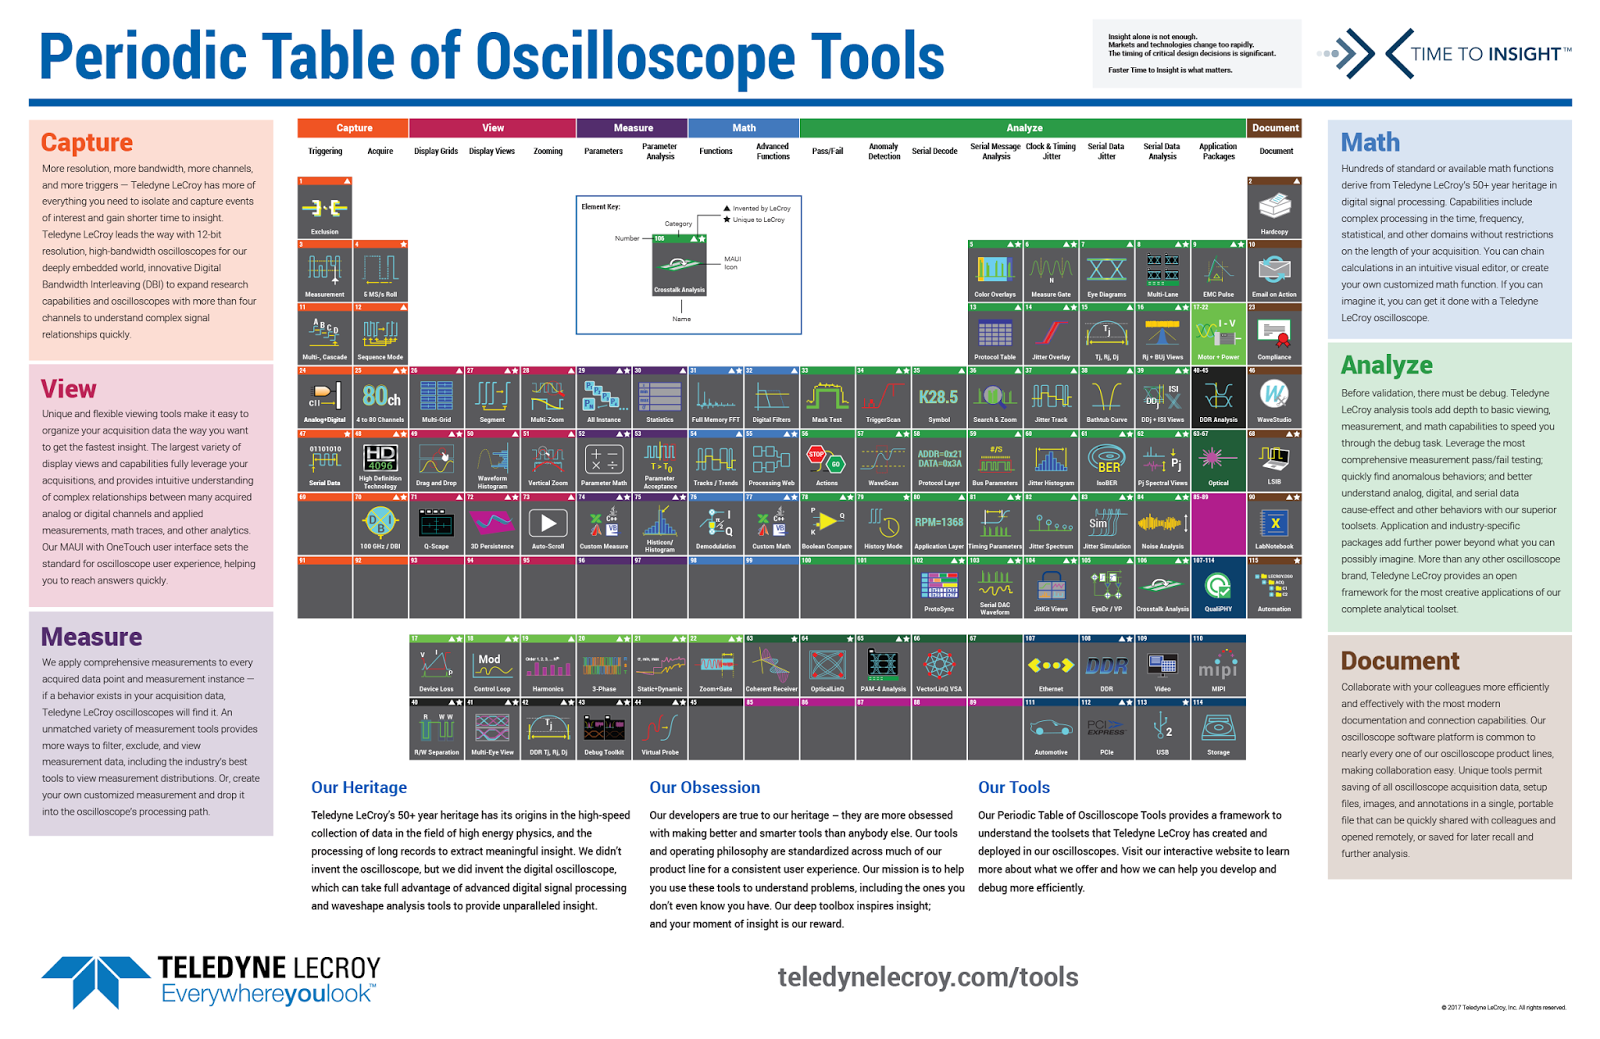 Test happens teledyne lecroy blog the periodic table of the periodic table of oscilloscope tools is a handy reference to oscilloscopes capabilities urtaz Gallery